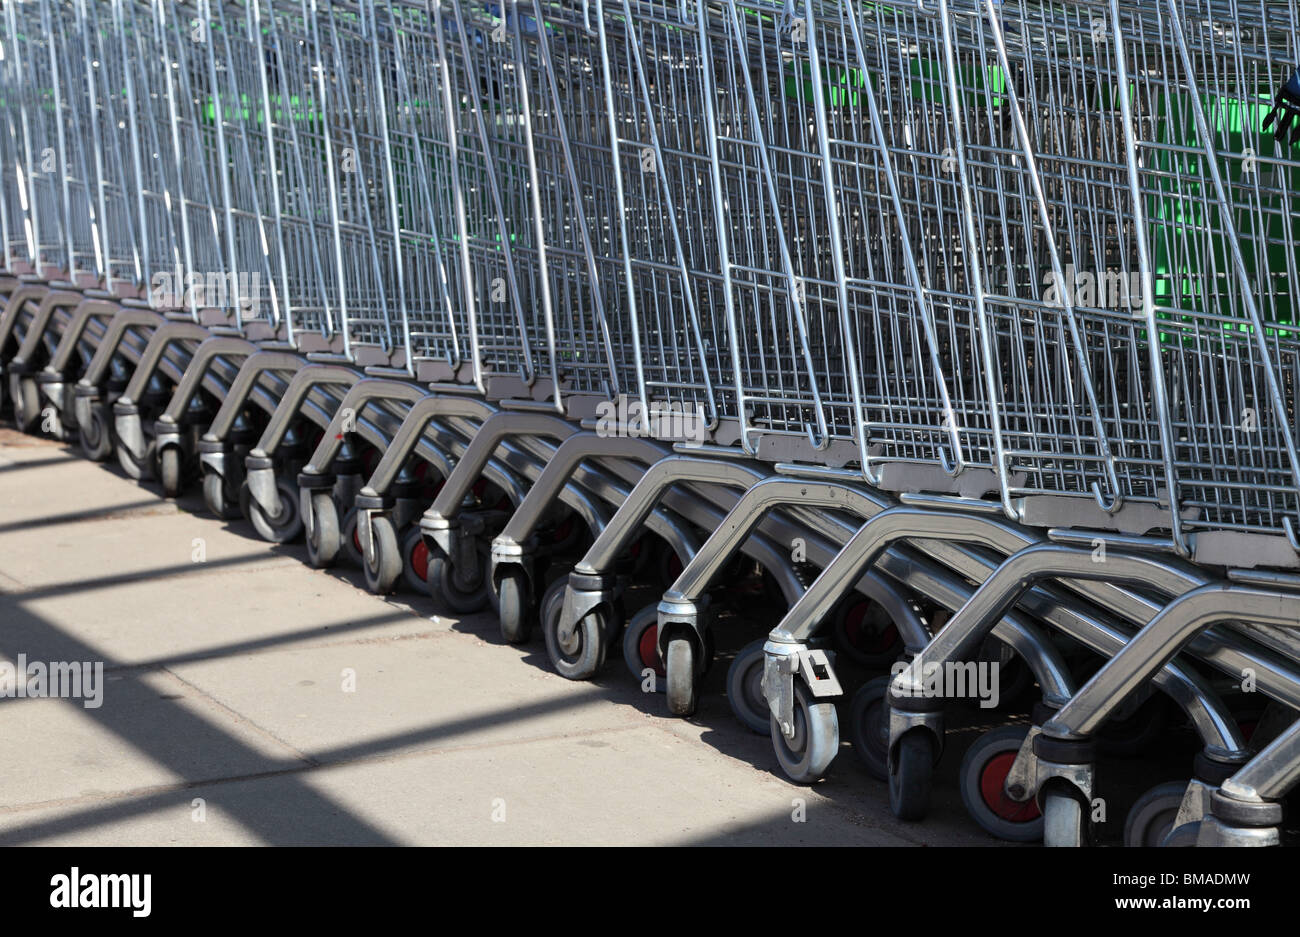 Stacked shopping trolleys - Stock Image